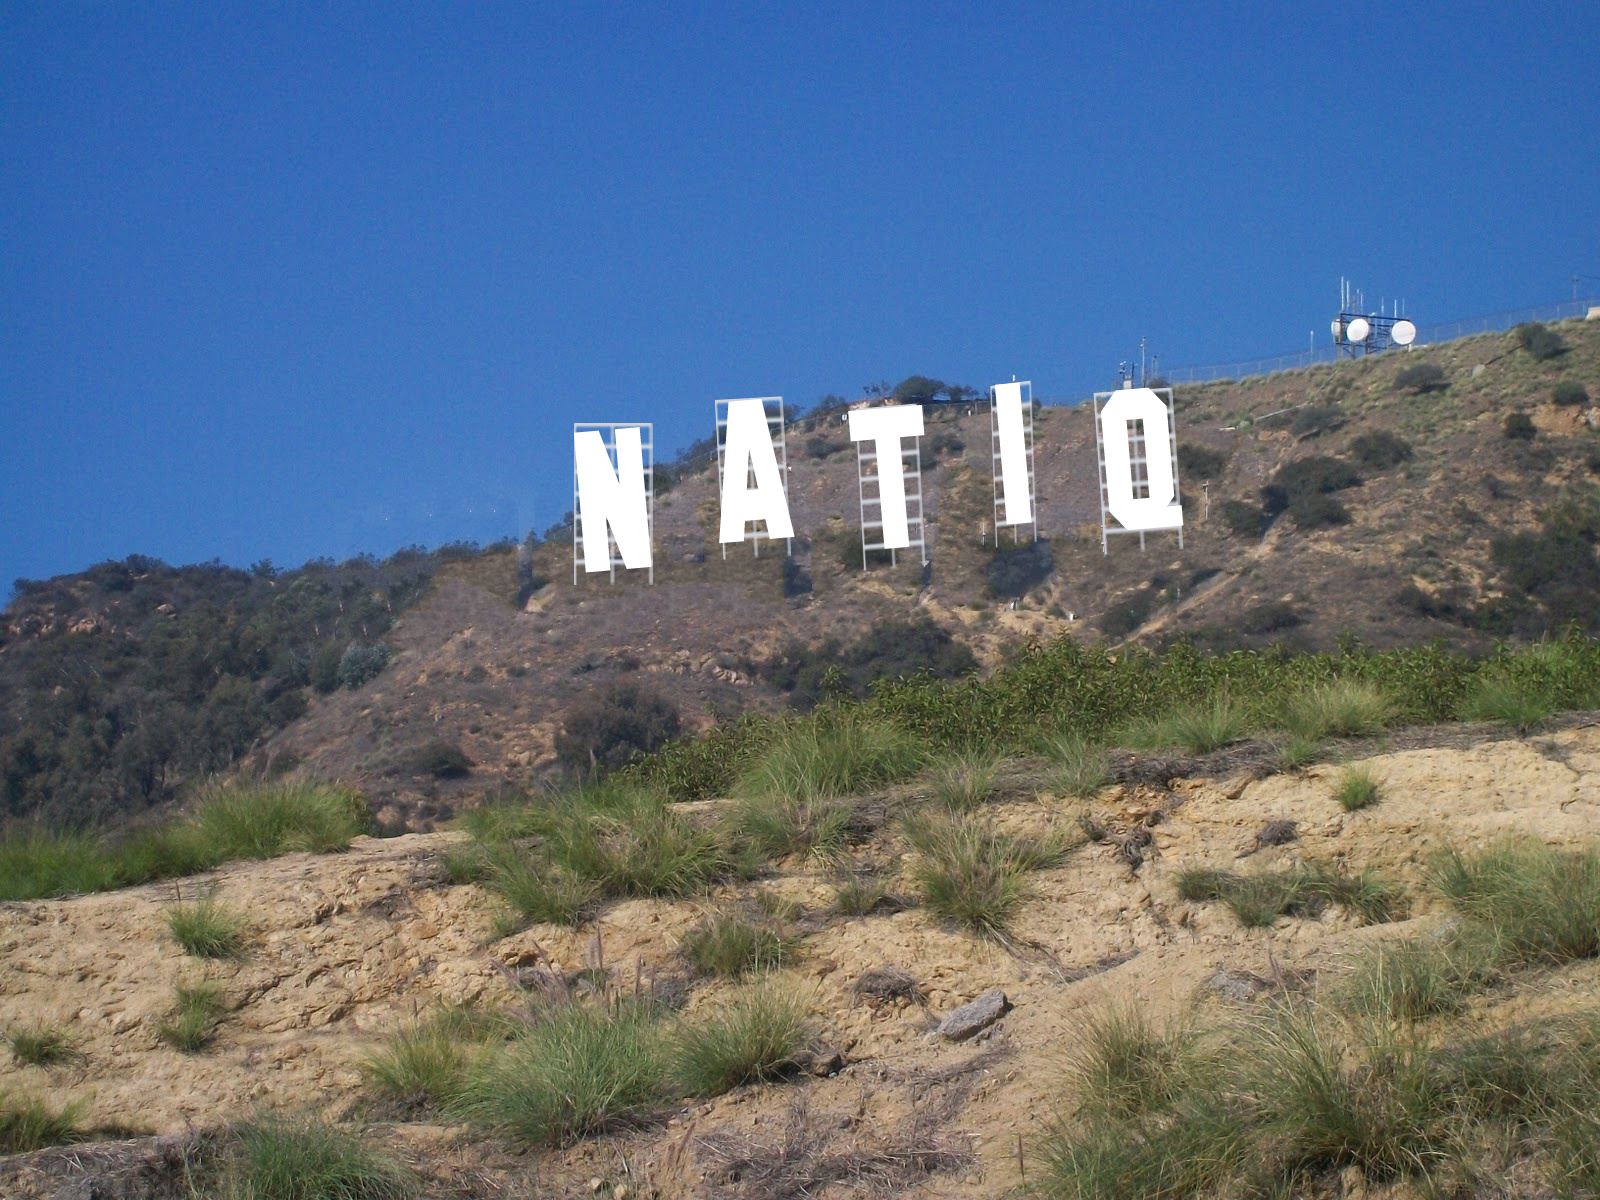 write your name on Hollywood Hills Billboards in 24 hrs